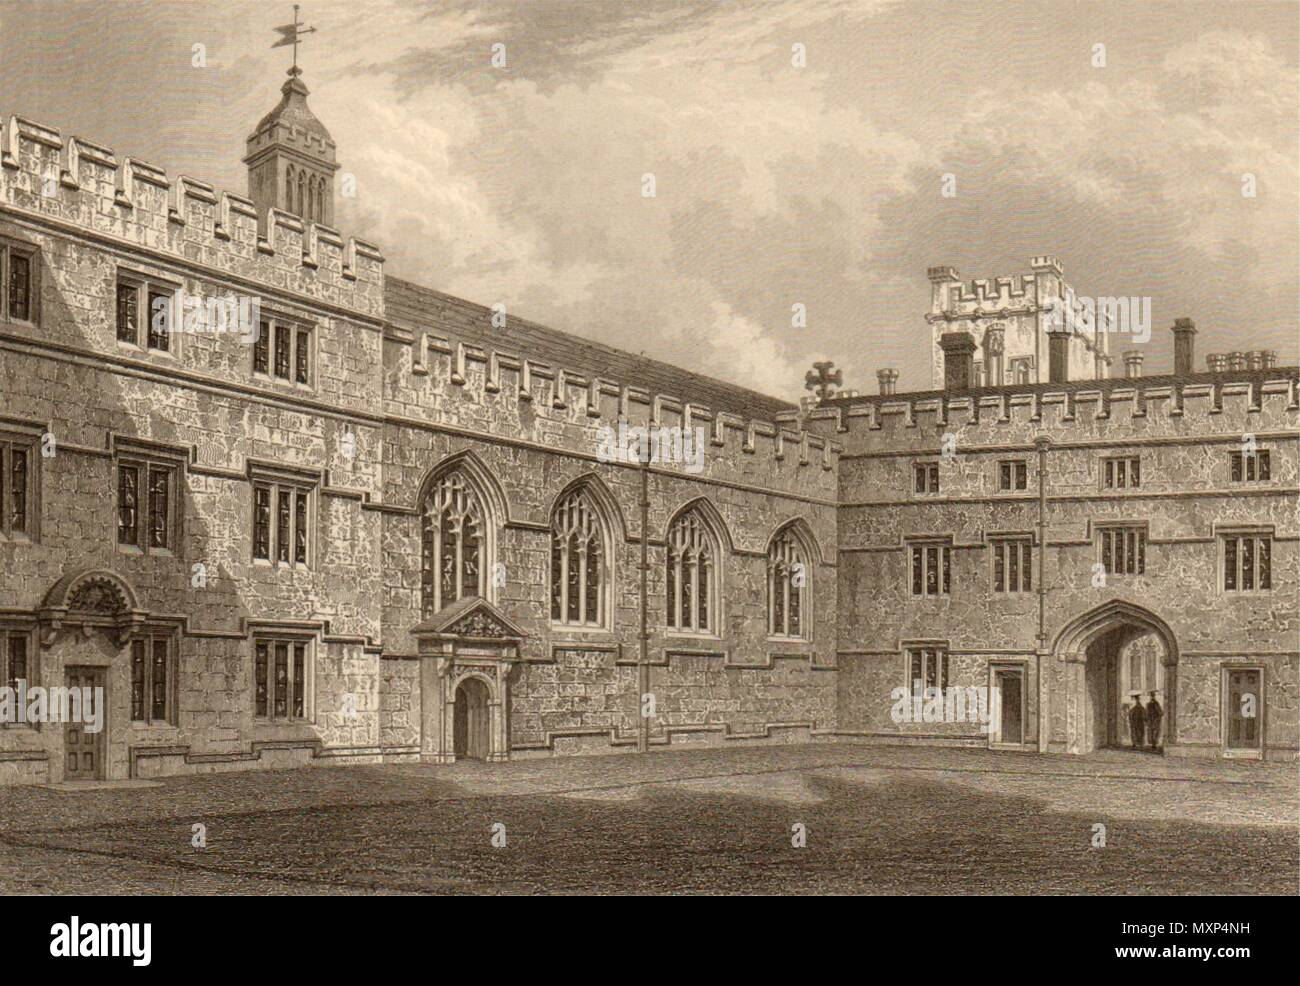 The Quadrangle of Jesus College, Oxford, by John Le Keux 1837 old print - Stock Image